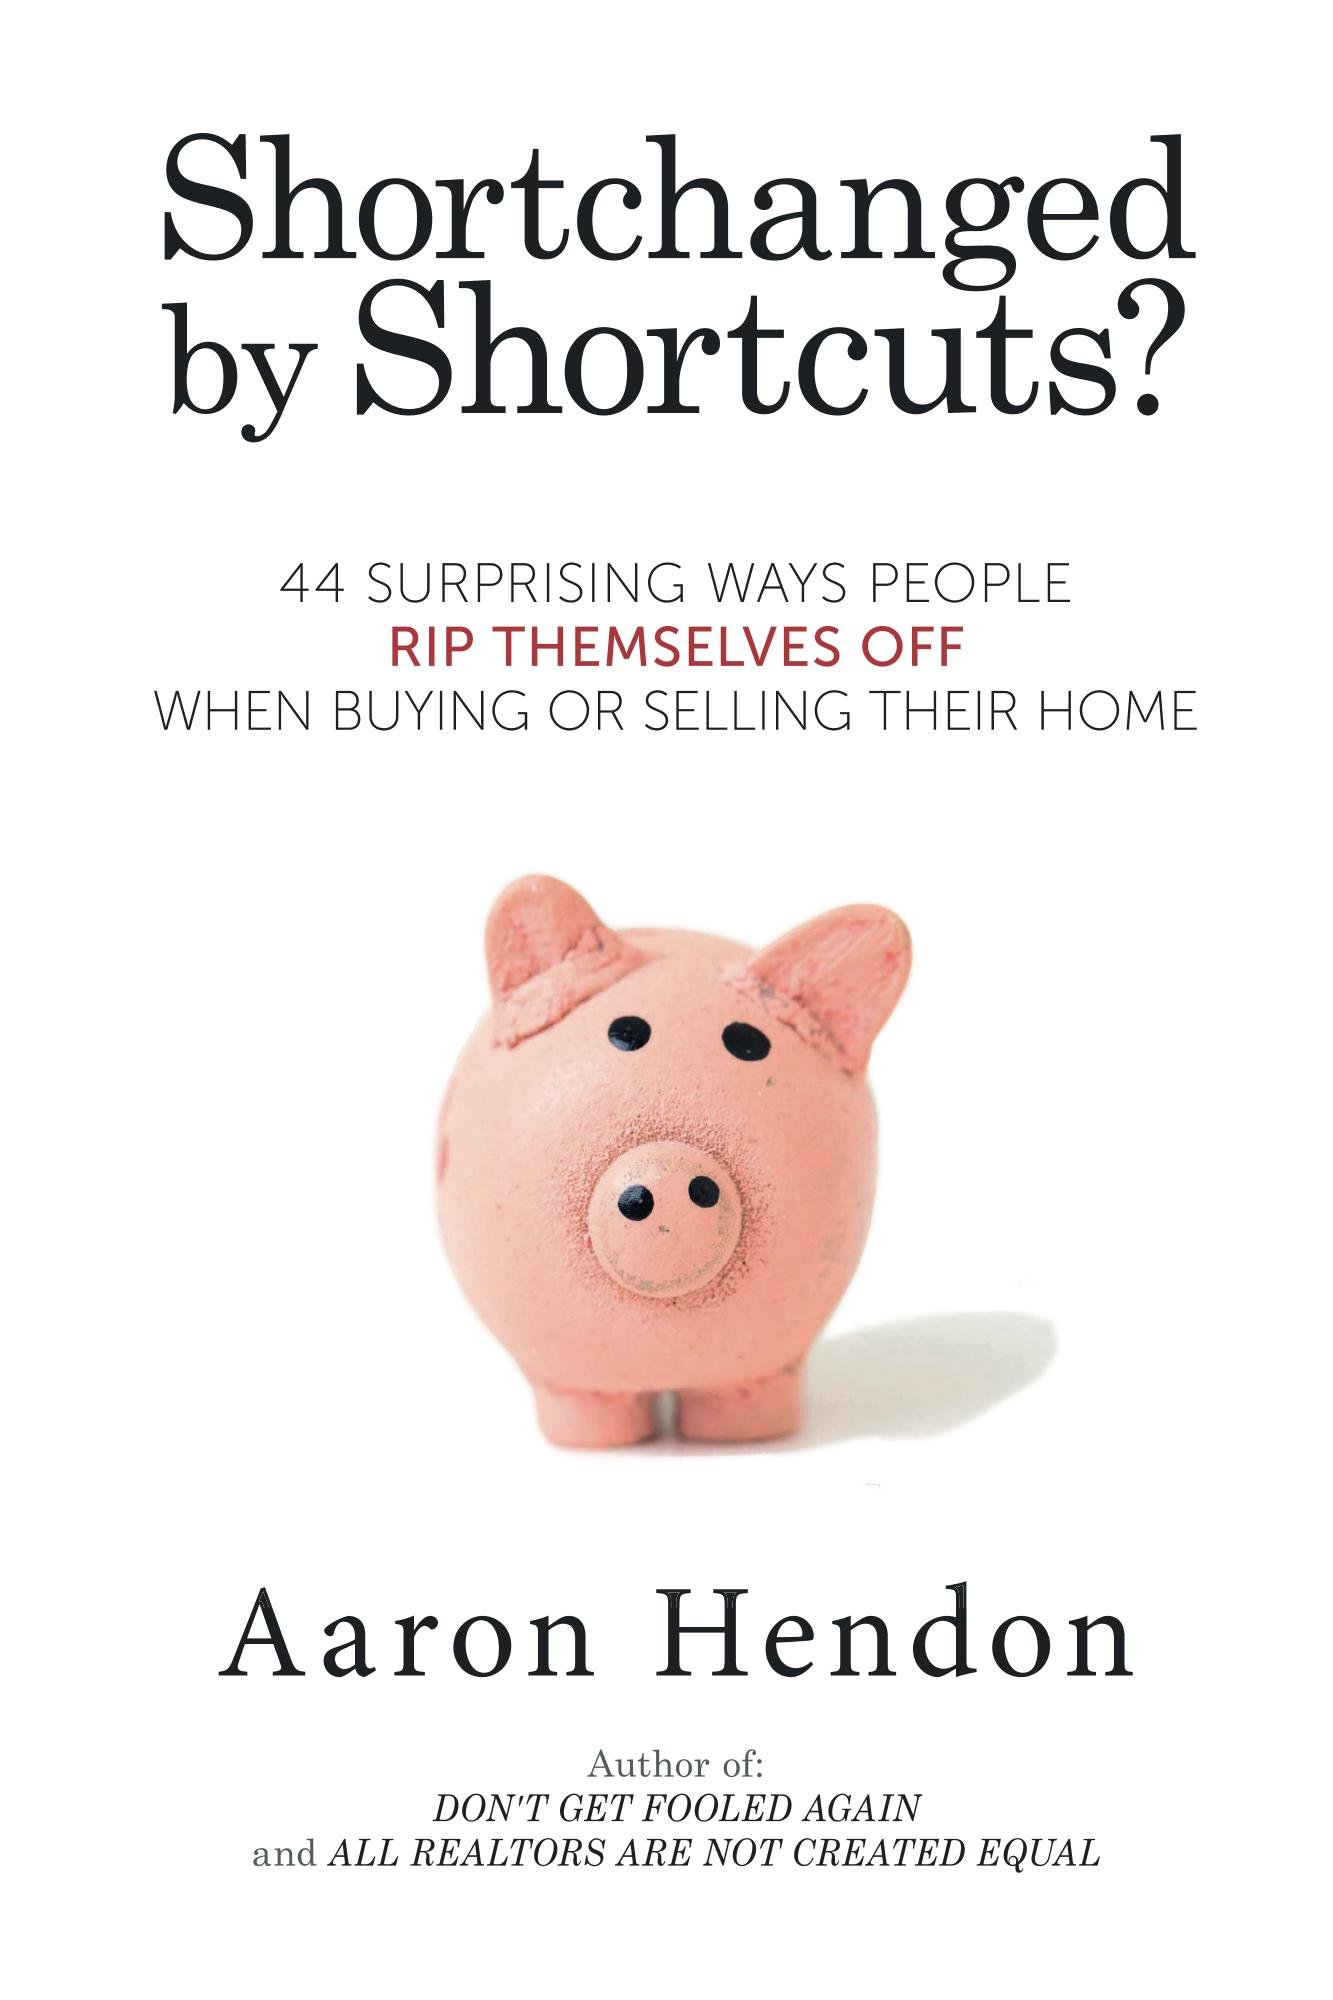 Shortchanged by Home Buying and Selling Shortcuts: 44 Surprising Ways People Rip Themselves Off When Buying or Selling Their Own Home